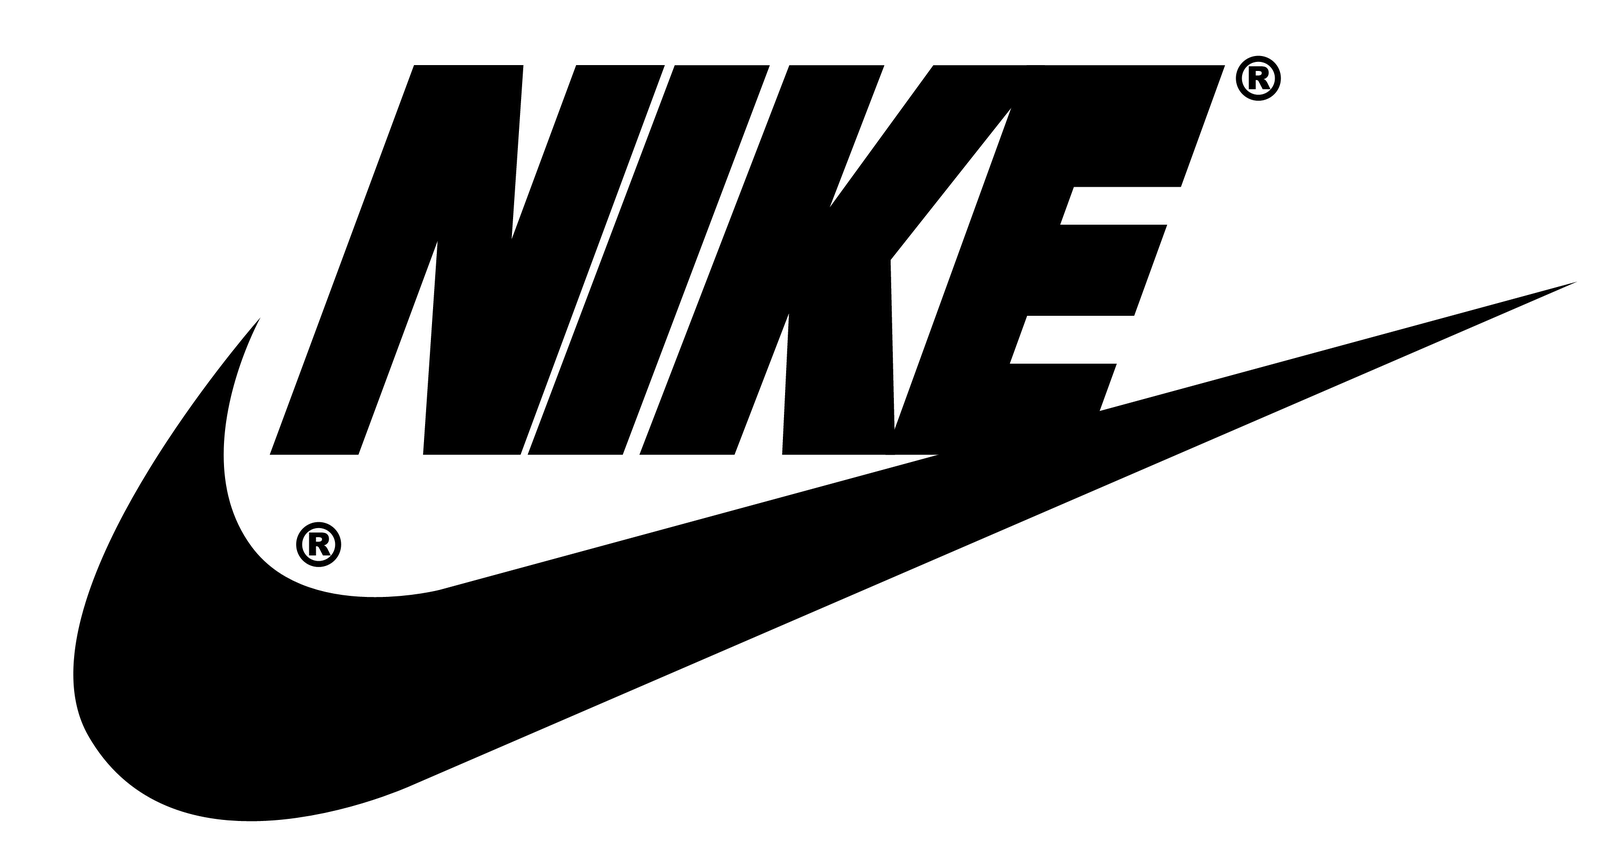 nike_PNG17.png